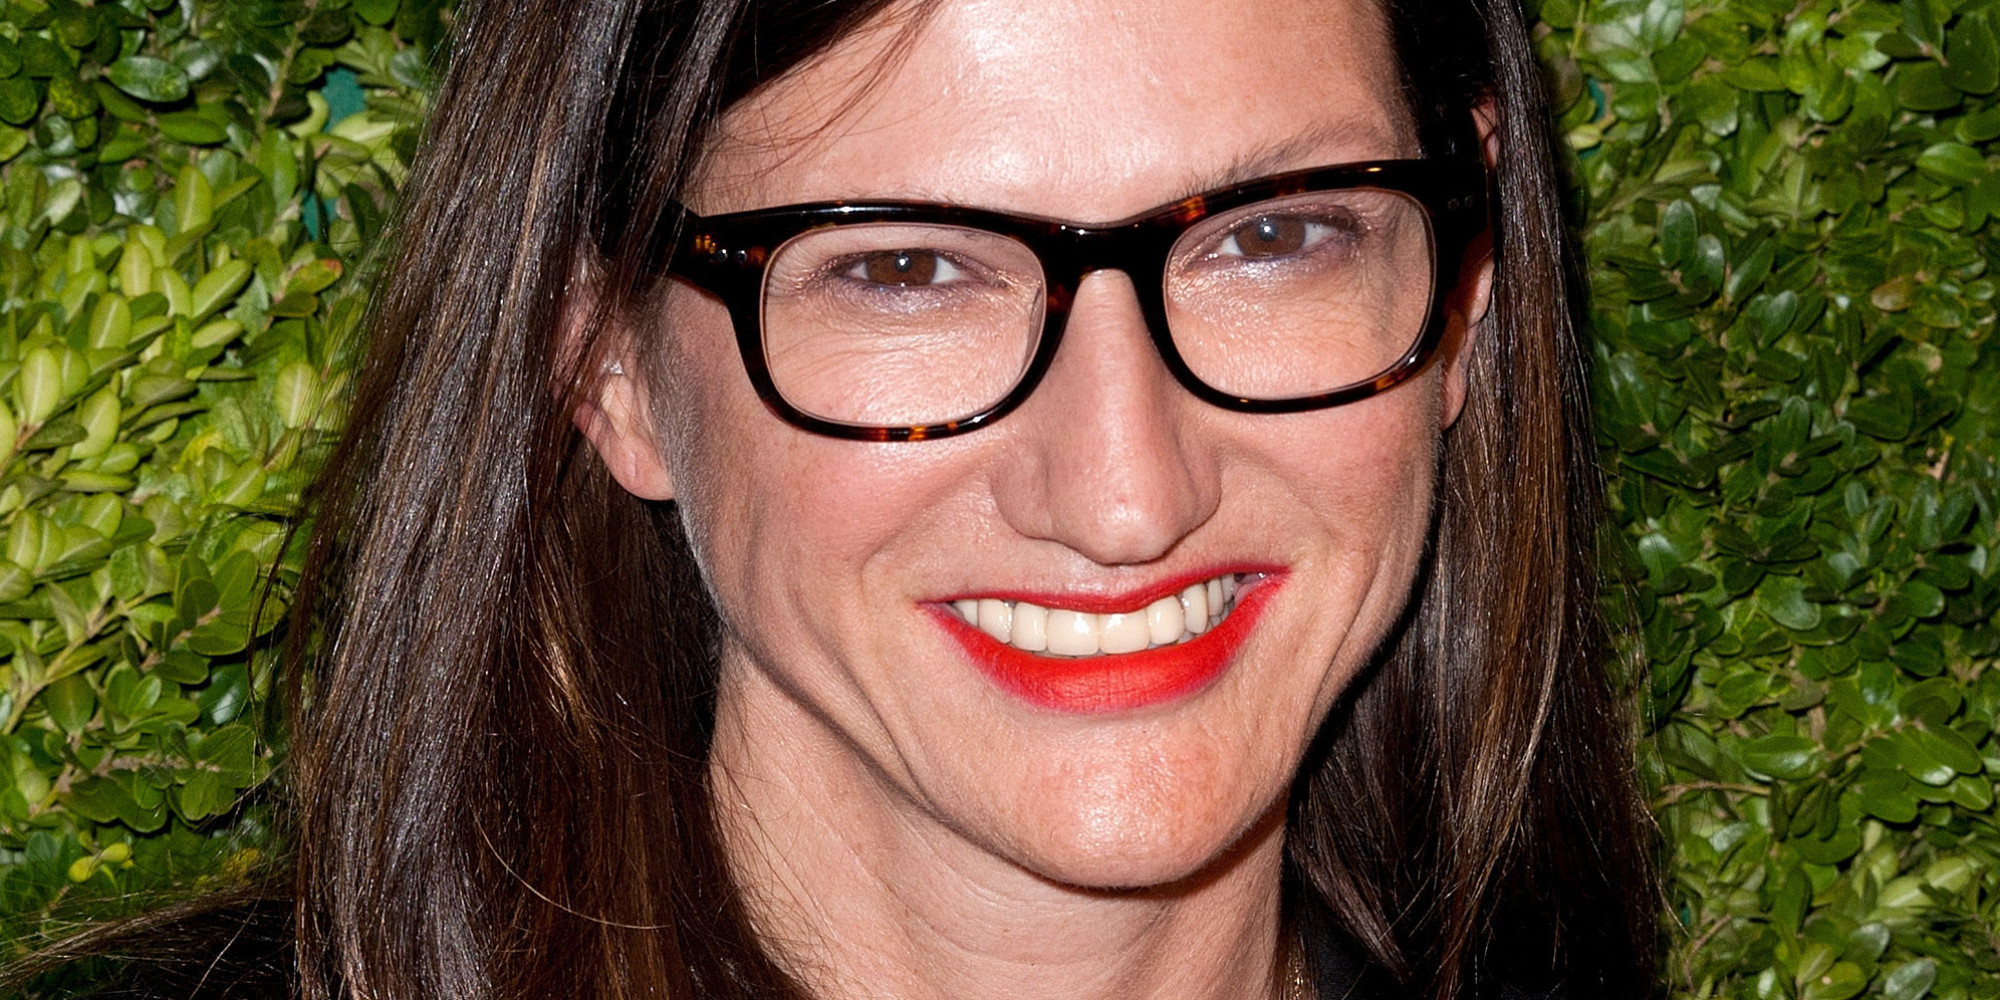 jenna lyons height weightjenna lyons style, jenna lyons 2016, jenna lyons in the bag, jenna lyons wiki, jenna lyons biography, jenna lyons wife, jenna lyons met gala, jenna lyons style 2016, jenna lyons street style, jenna lyons office, jenna lyons instagram, jenna lyons height, jenna lyons youtube, jenna lyons height weight